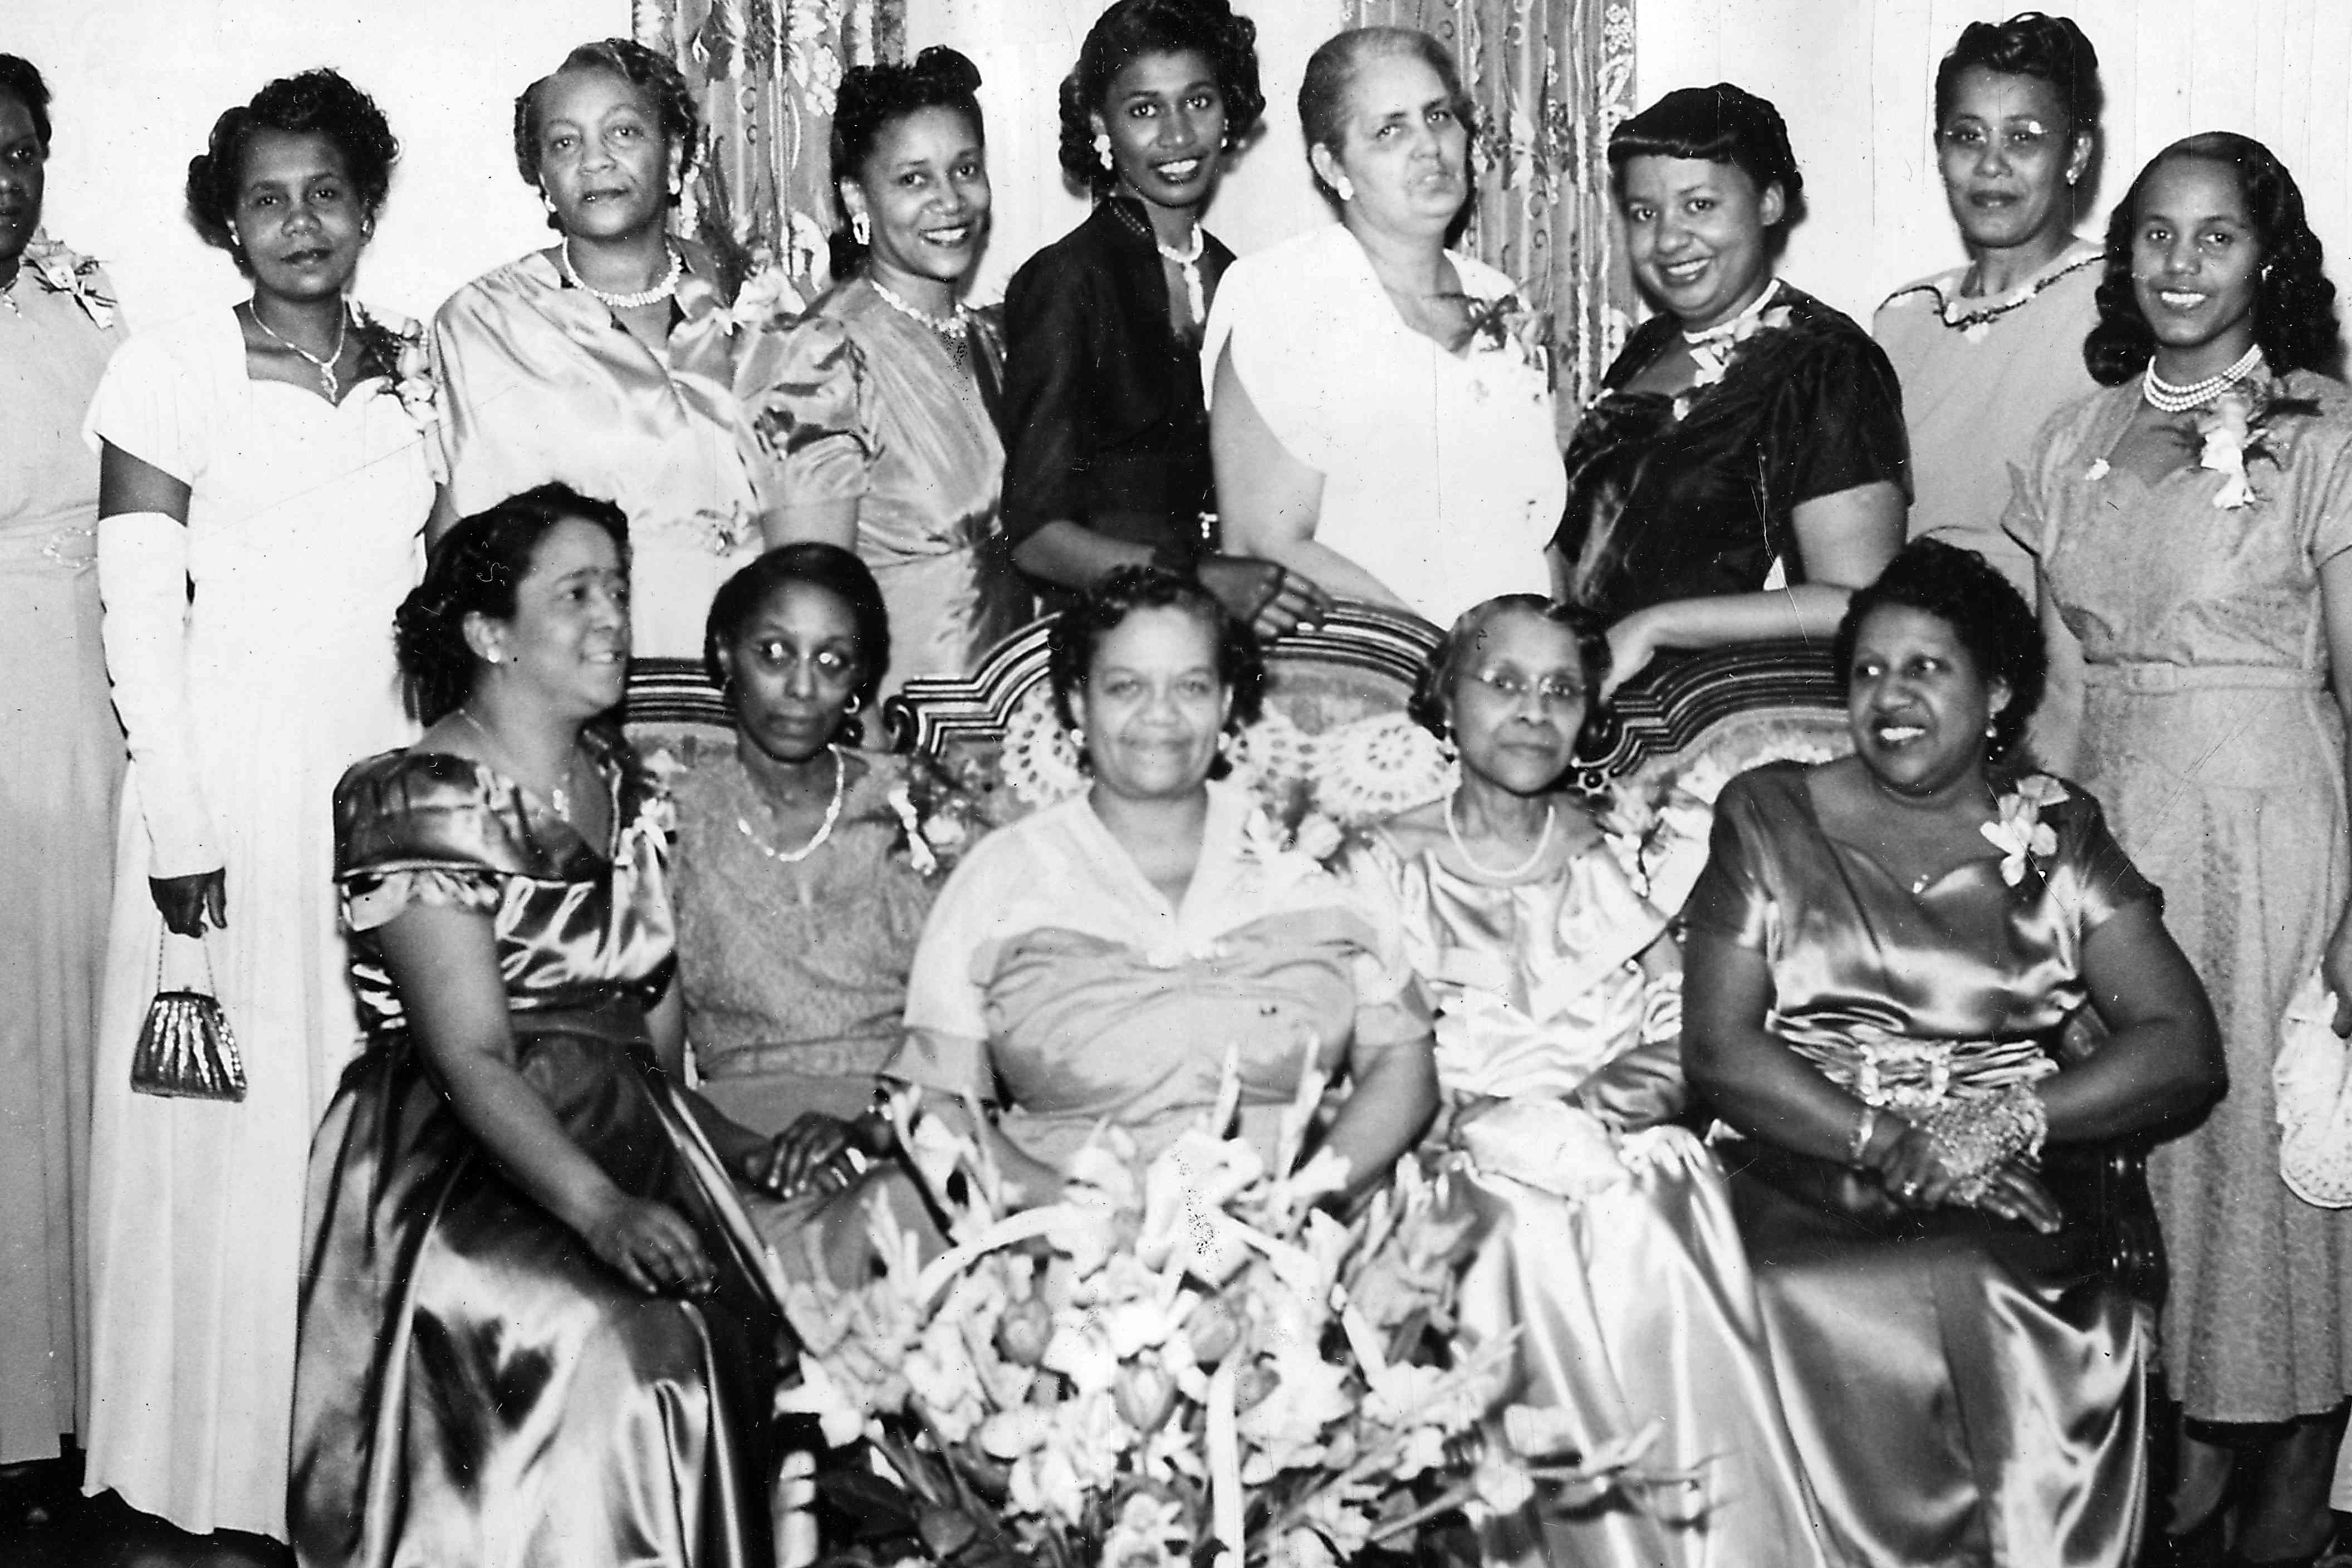 Zeta Phi Beta sorority members standing and founders sitting on a couch